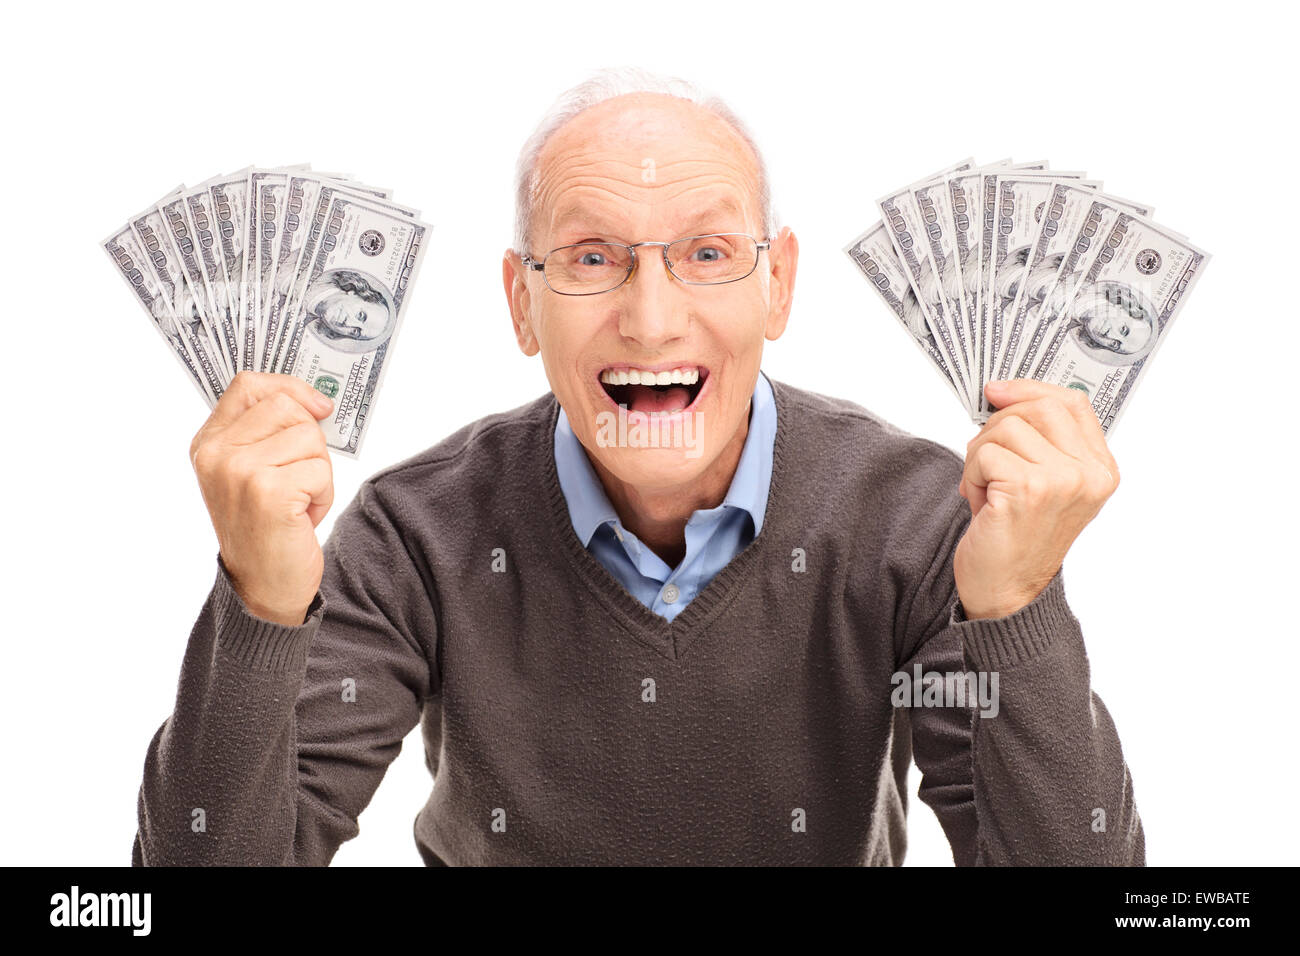 Studio shot of a joyful senior holding money in both hands and looking at the camera isolated on white background - Stock Image